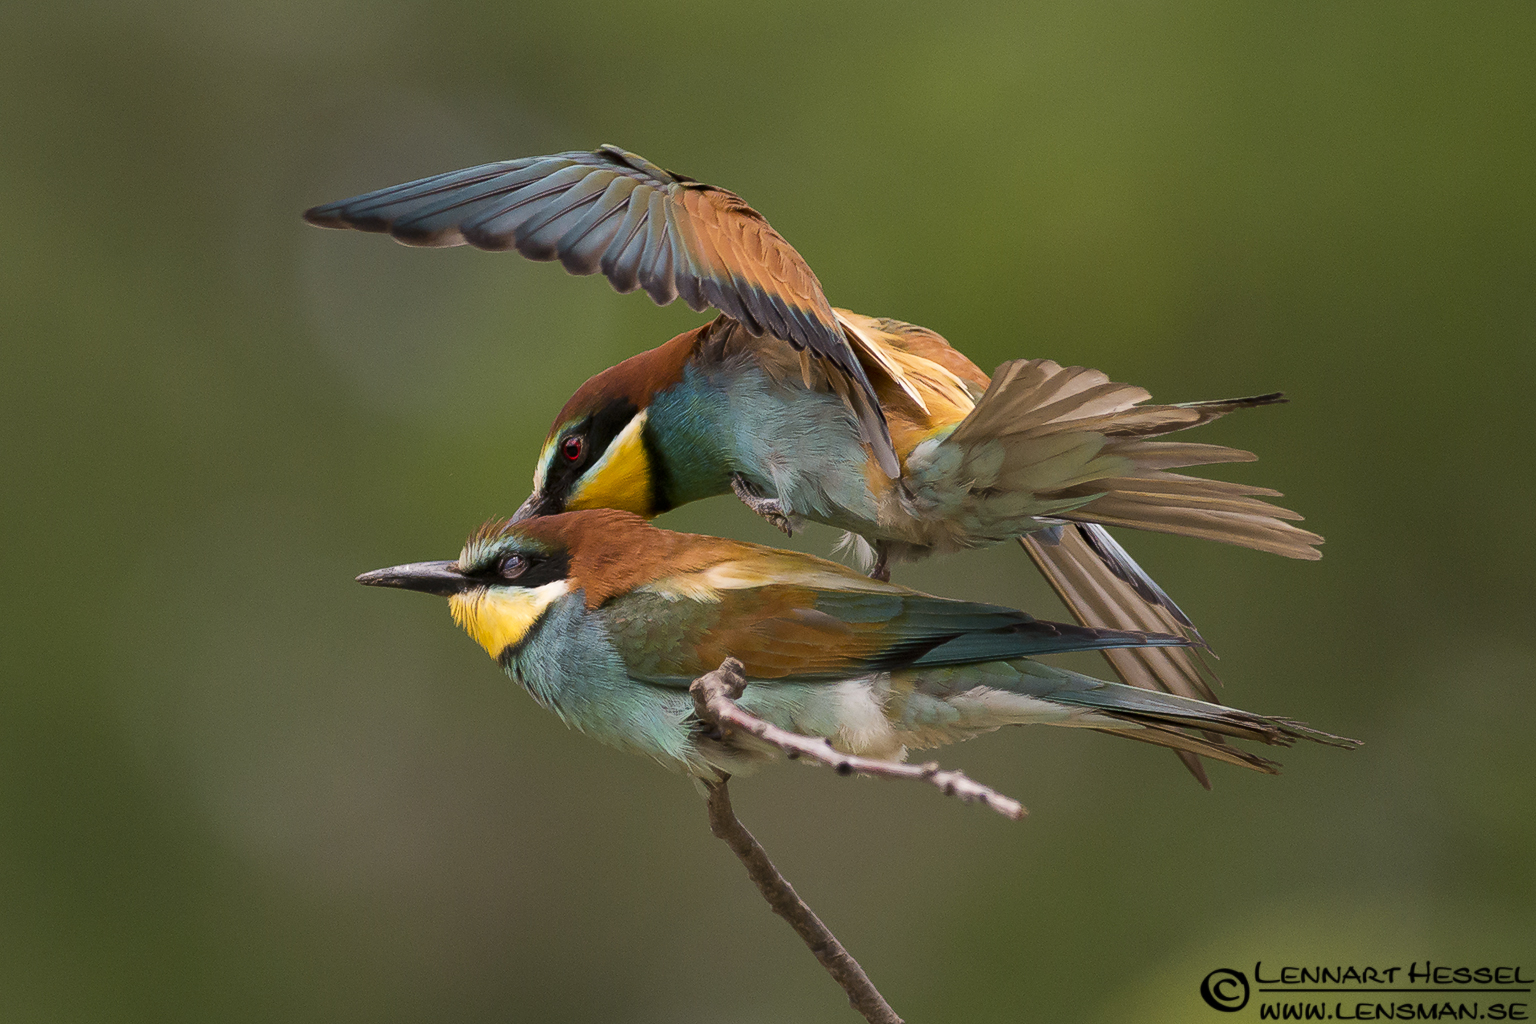 European Bee-eater mating in Hungary